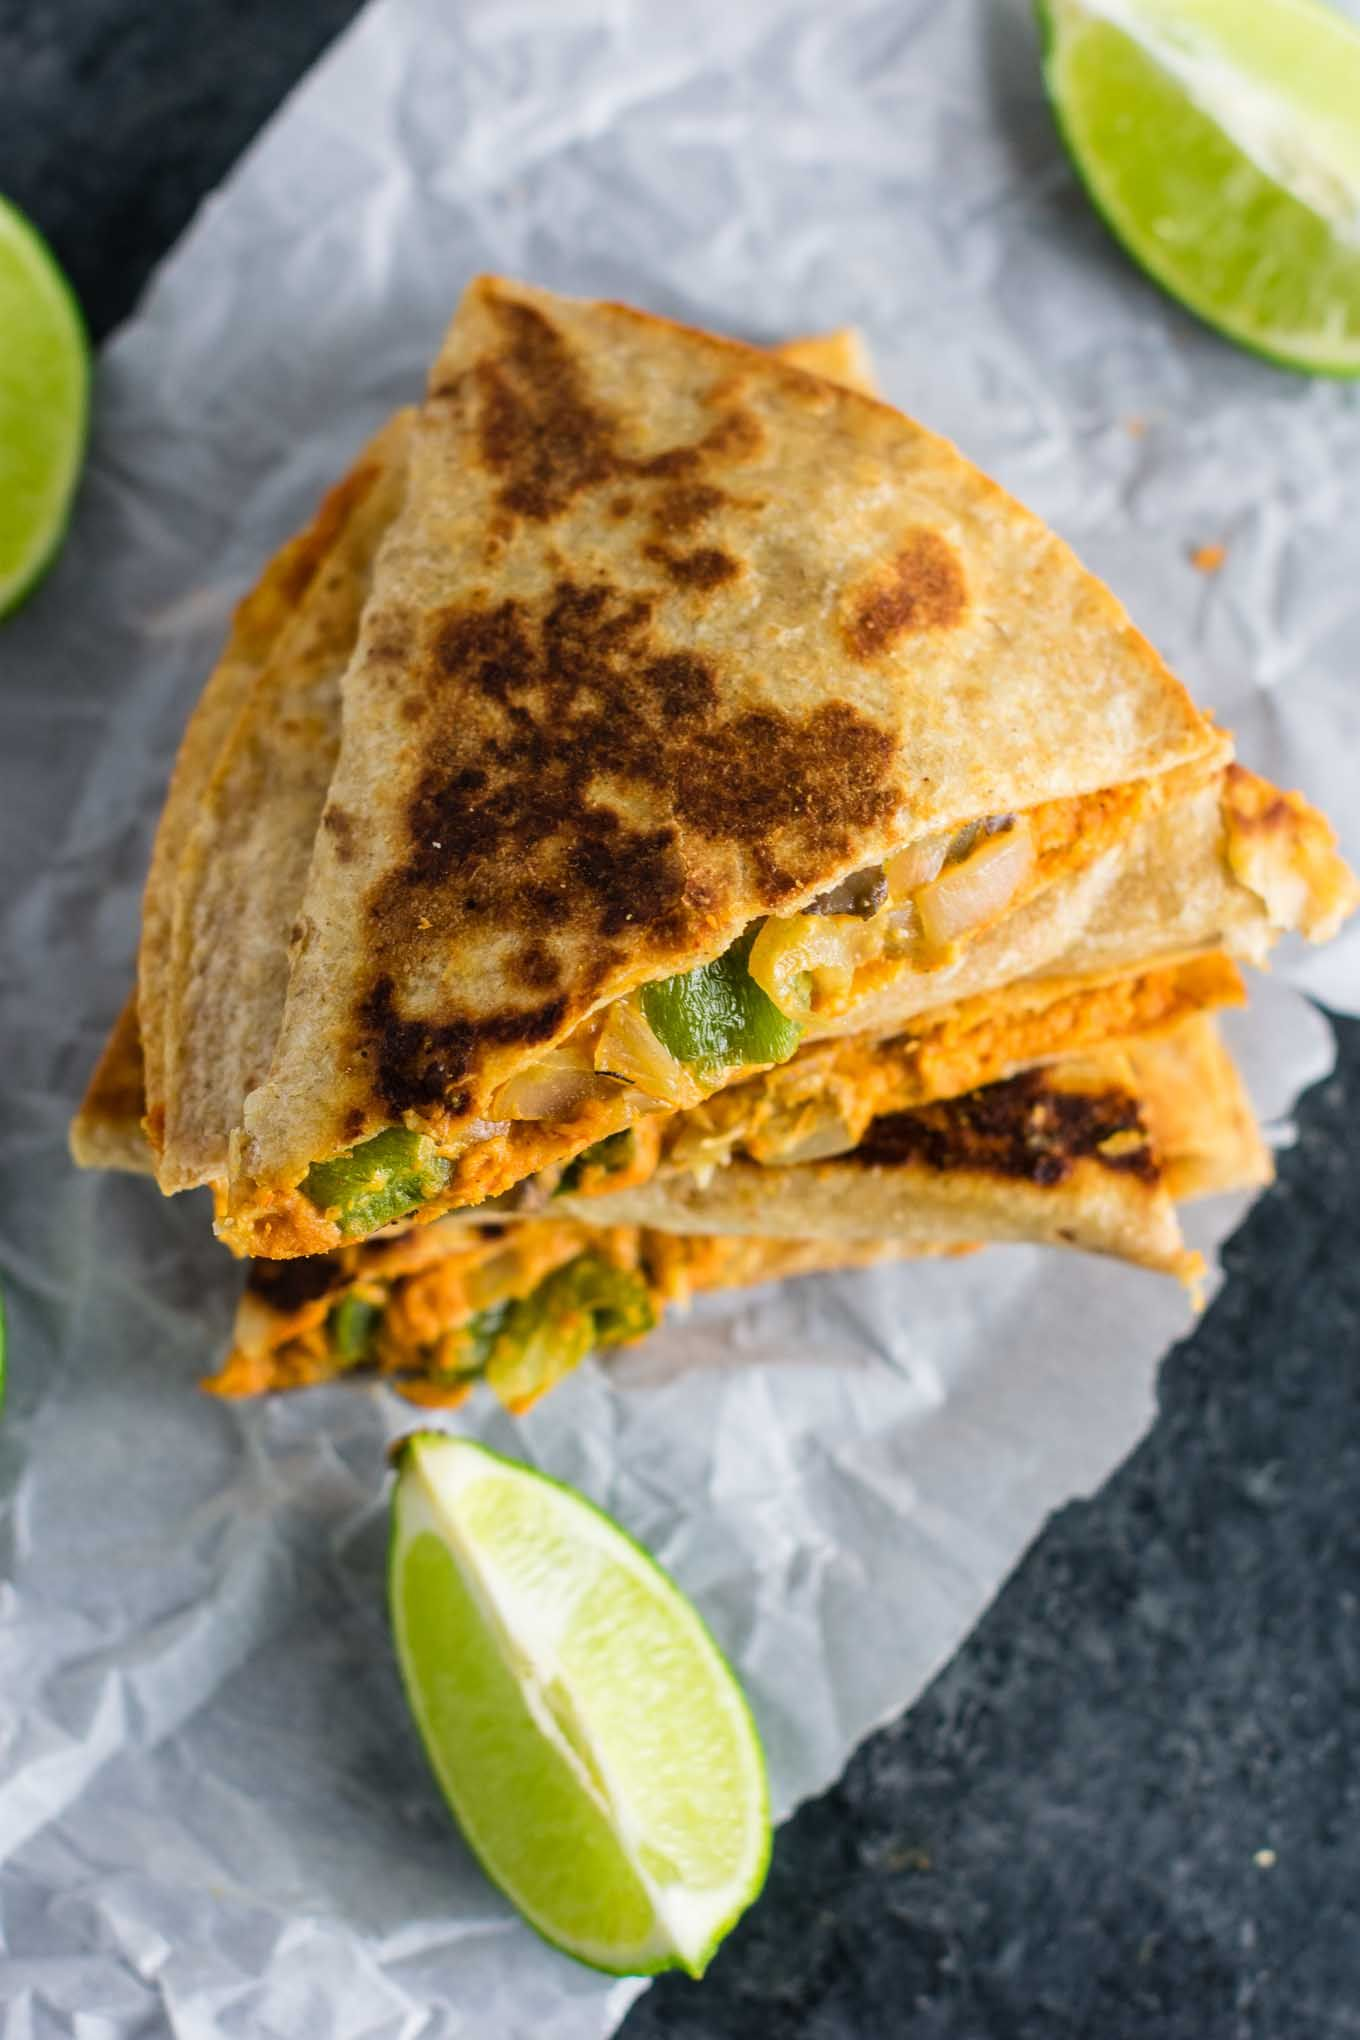 Easy Vegan Quesadillas Recipe Packed Full Of Protein And Flavor No Meat No Dairy No Vegan Cheese It S A Mexican Fav Vegan Dinner Recipes Recipes Easy Vegan